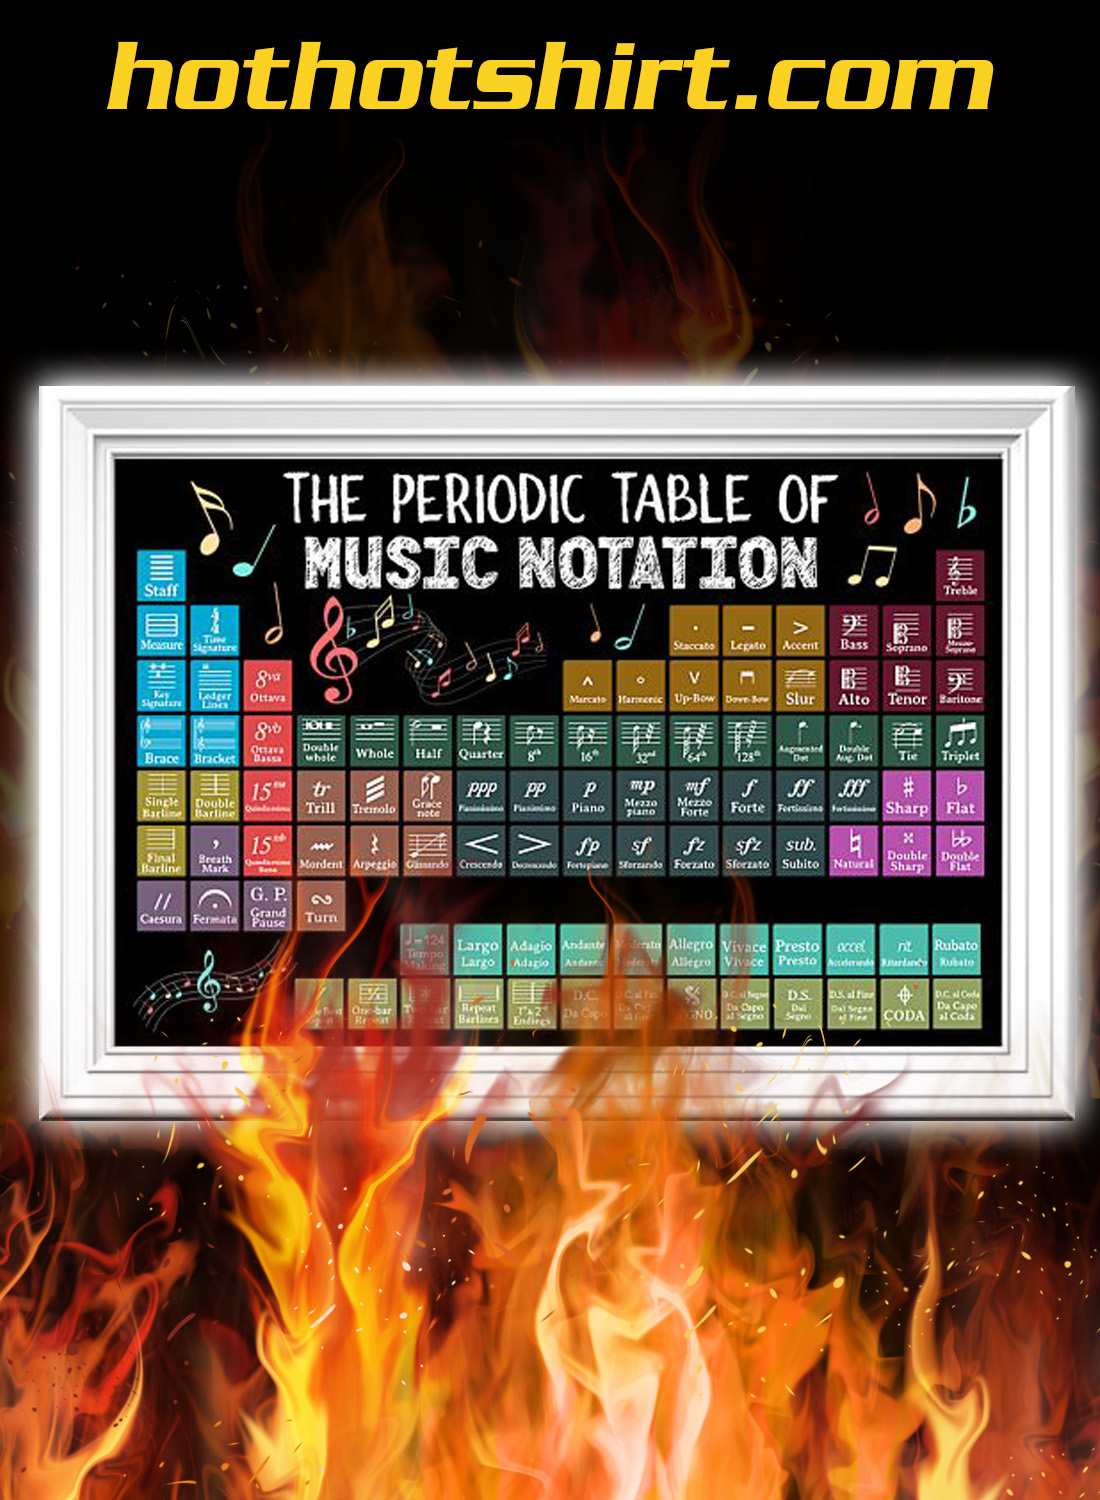 The periodic table of music notation poster 2